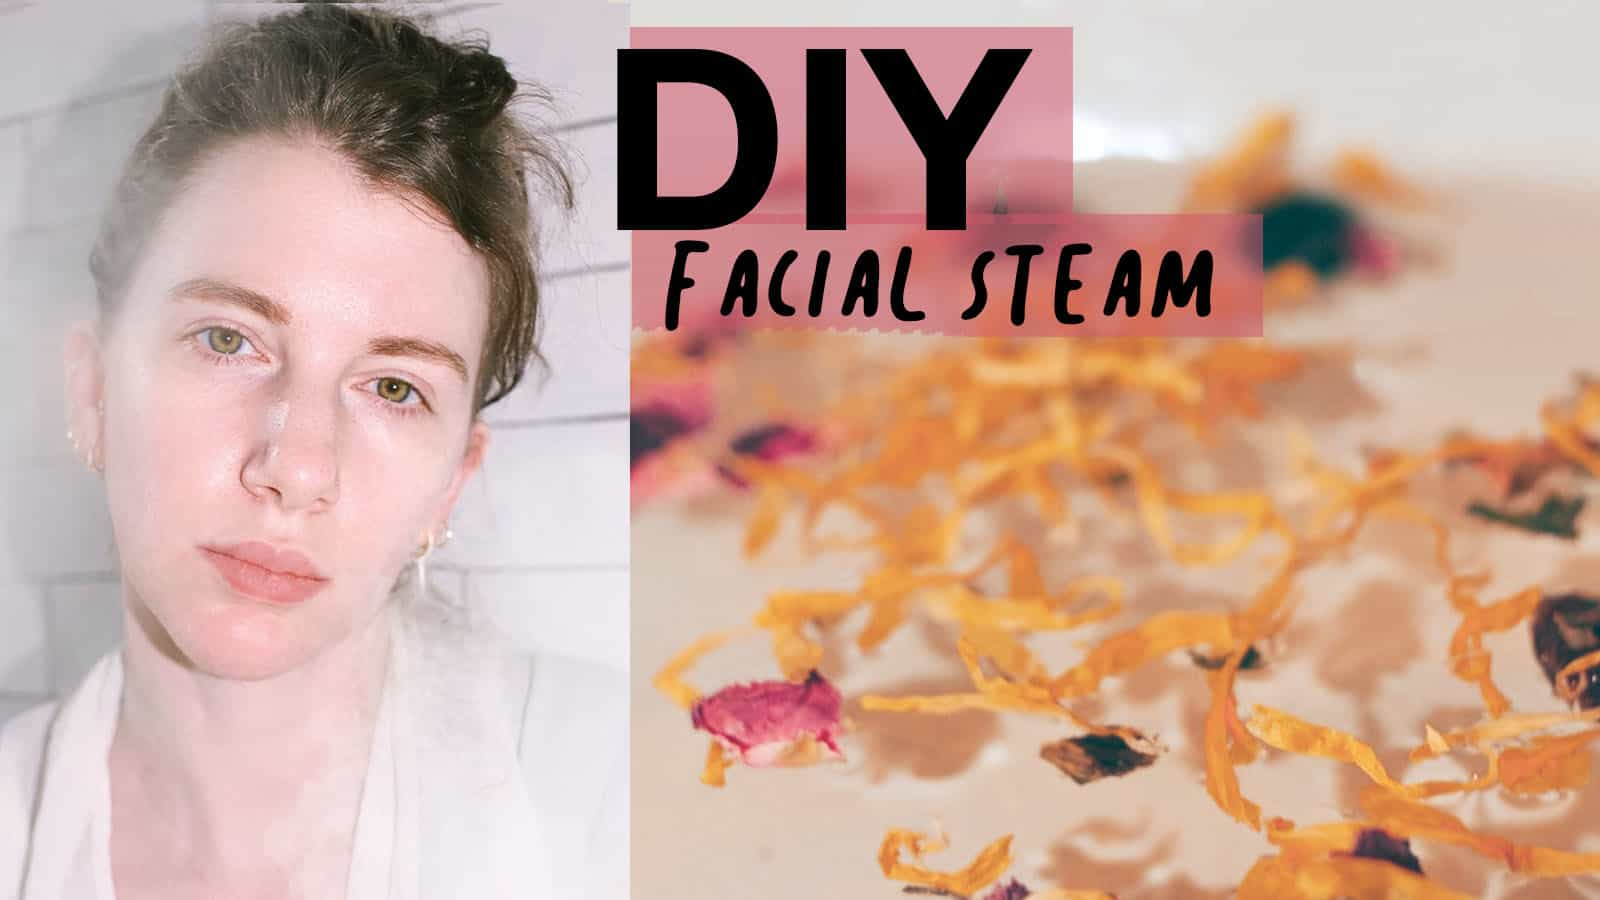 DIY facial steam recipes